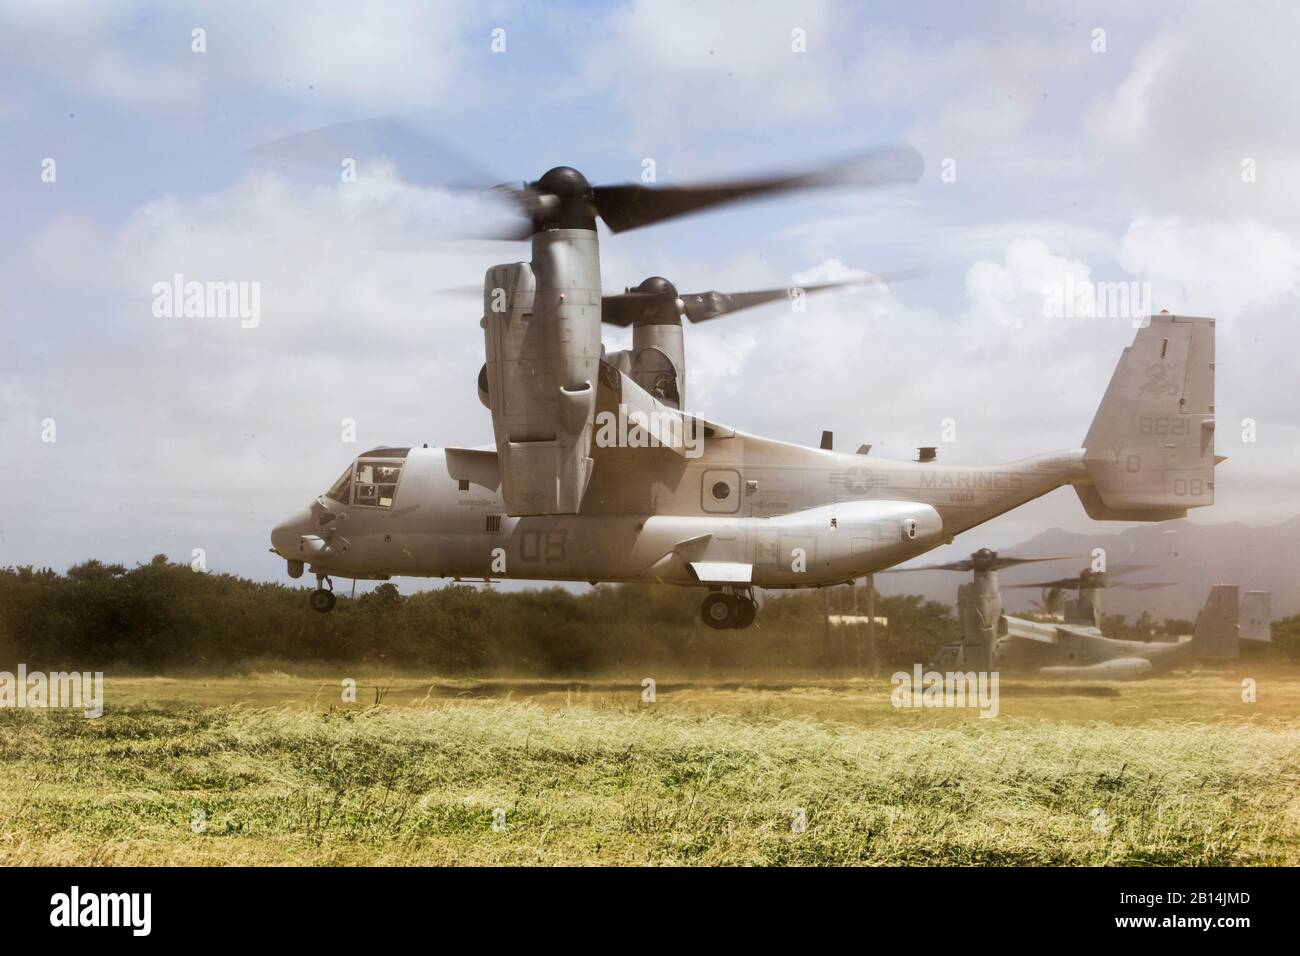 A U.S. Marine Corps MV-22 Osprey aircraft with Marine Medium Tiltrotor Squadron (VMM) 268 departs the Boondocker Training Area aboard Marine Corps Base Hawaii on May 31, 2017. The training exercise involved transporting an Internal Transport Vehicle and a 120 mm mortar system to aid in direct support of infantry units. (U.S. Marine Corps photo by Lance Cpl. Matthew Kirk) Stock Photo